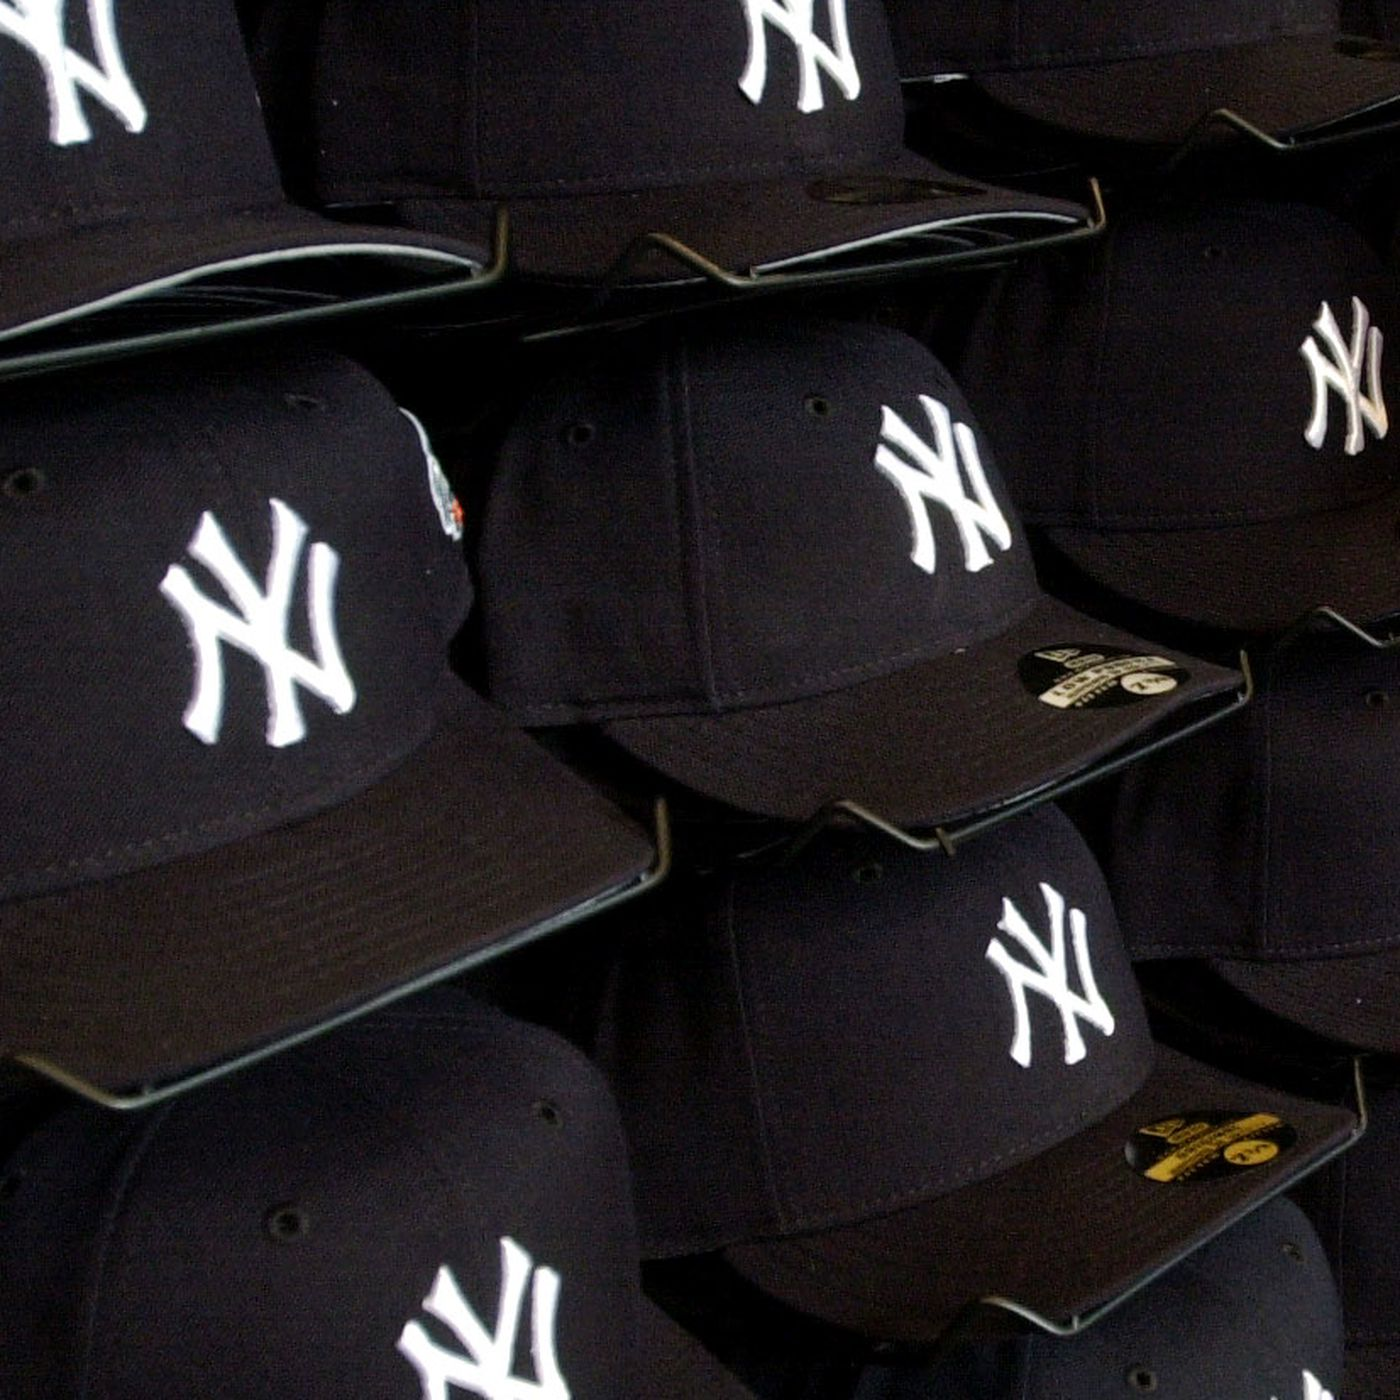 1a89614ff11 The 30 best New Era Yankees caps available right now - Pinstripe Alley